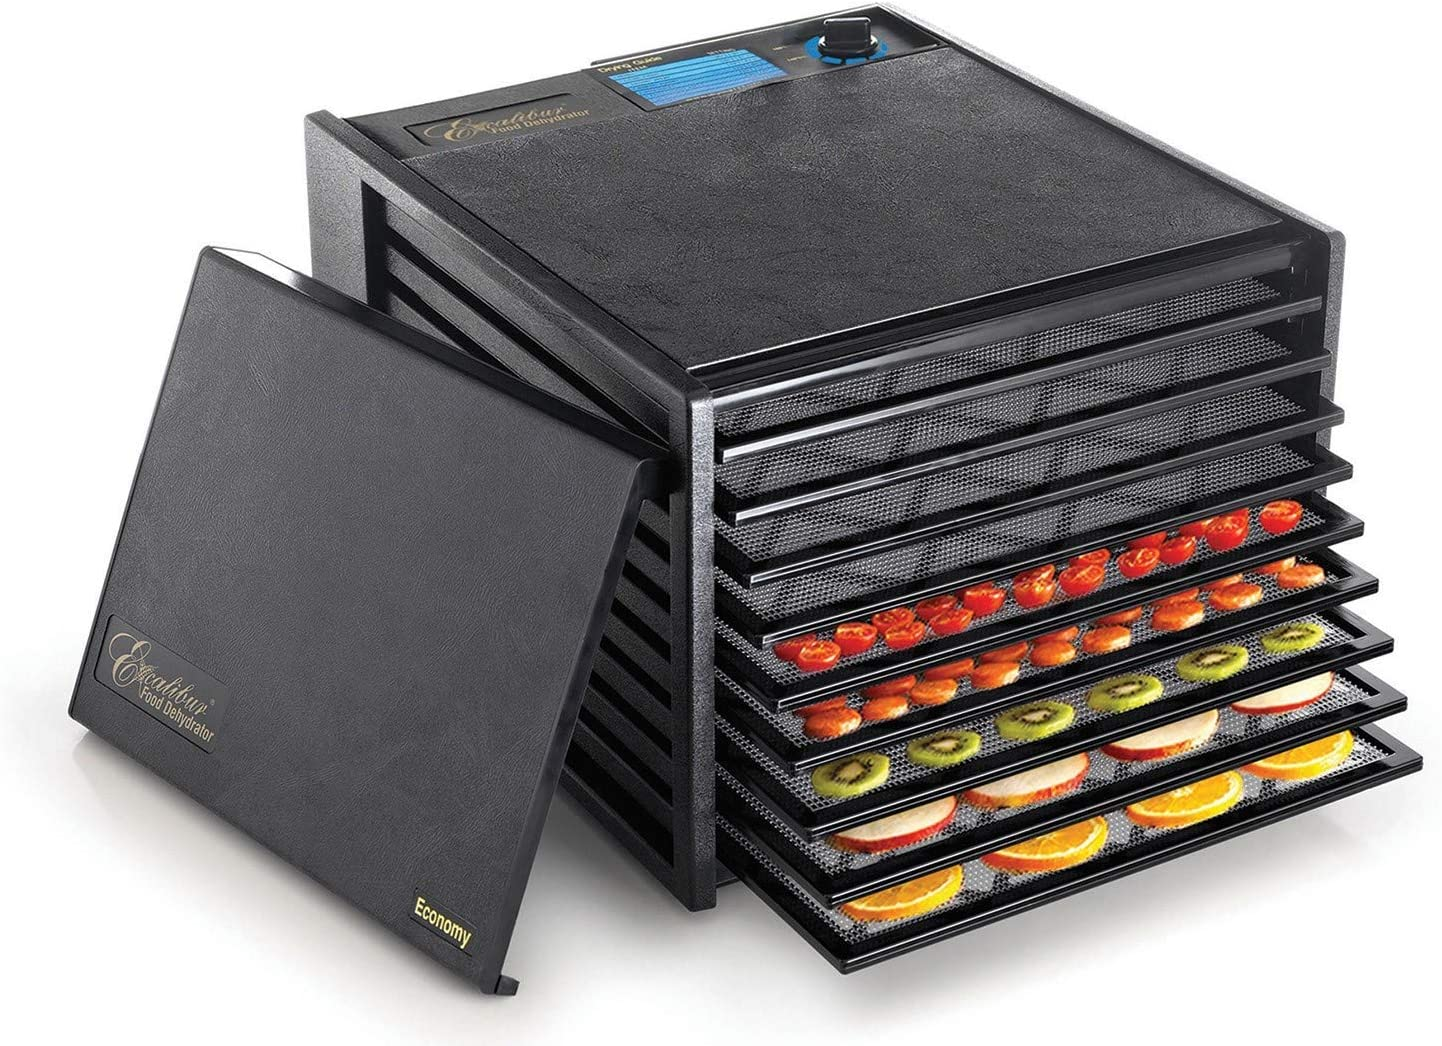 Excalibur 2900ECB 9-Tray Food Dehydrator with Adjustable Thermostat for Temperature Control Patented Technology for Faster and Efficient Drying 15 Square Feet Drying Space Made in USA, 9-Tray, Black (Renewed)